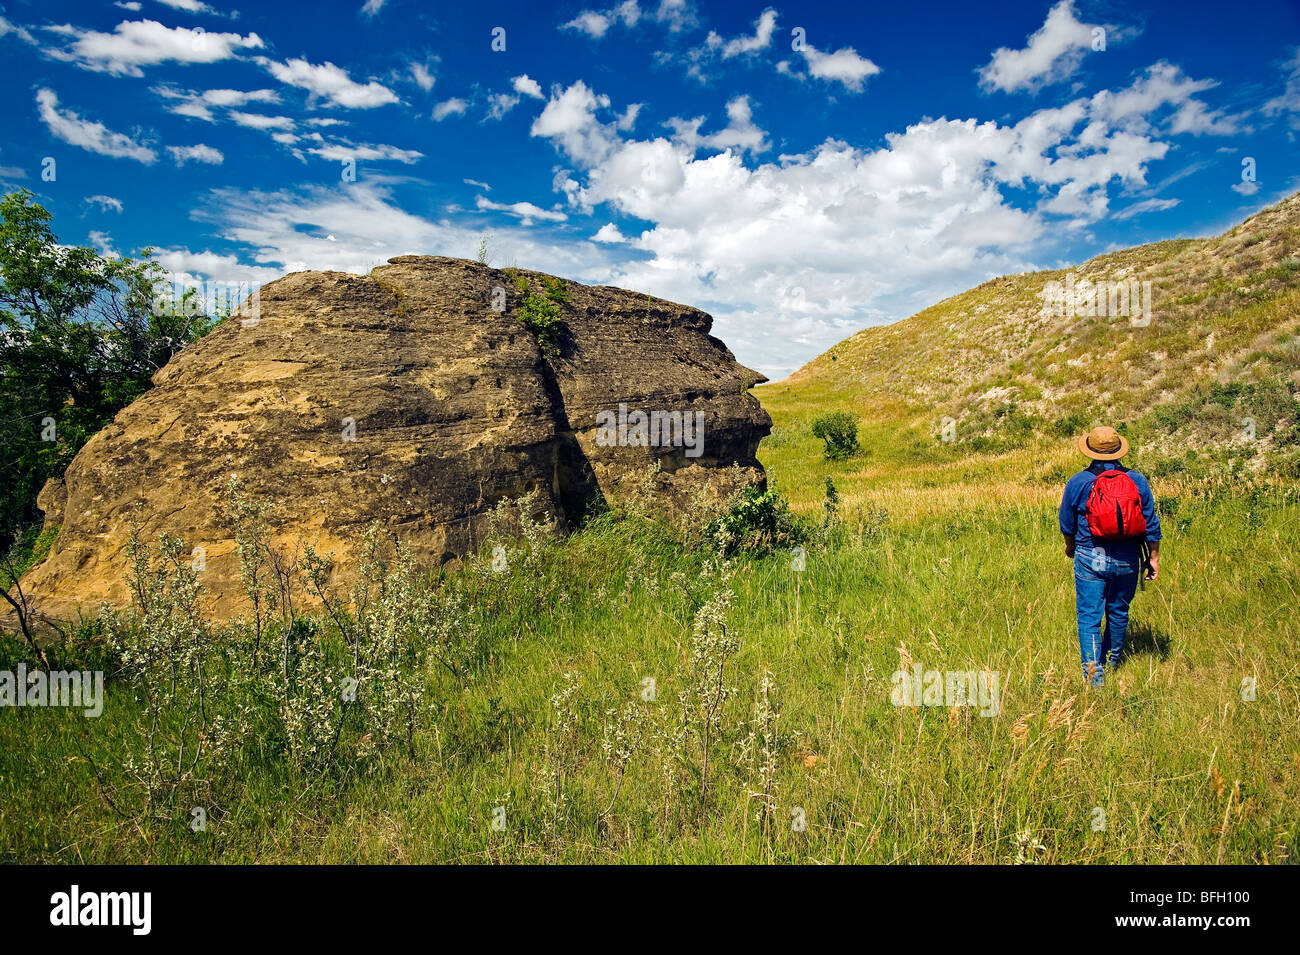 hiker, rock formations near Roche Percee, Souris River Valley, Saskatchewan, Canada - Stock Image